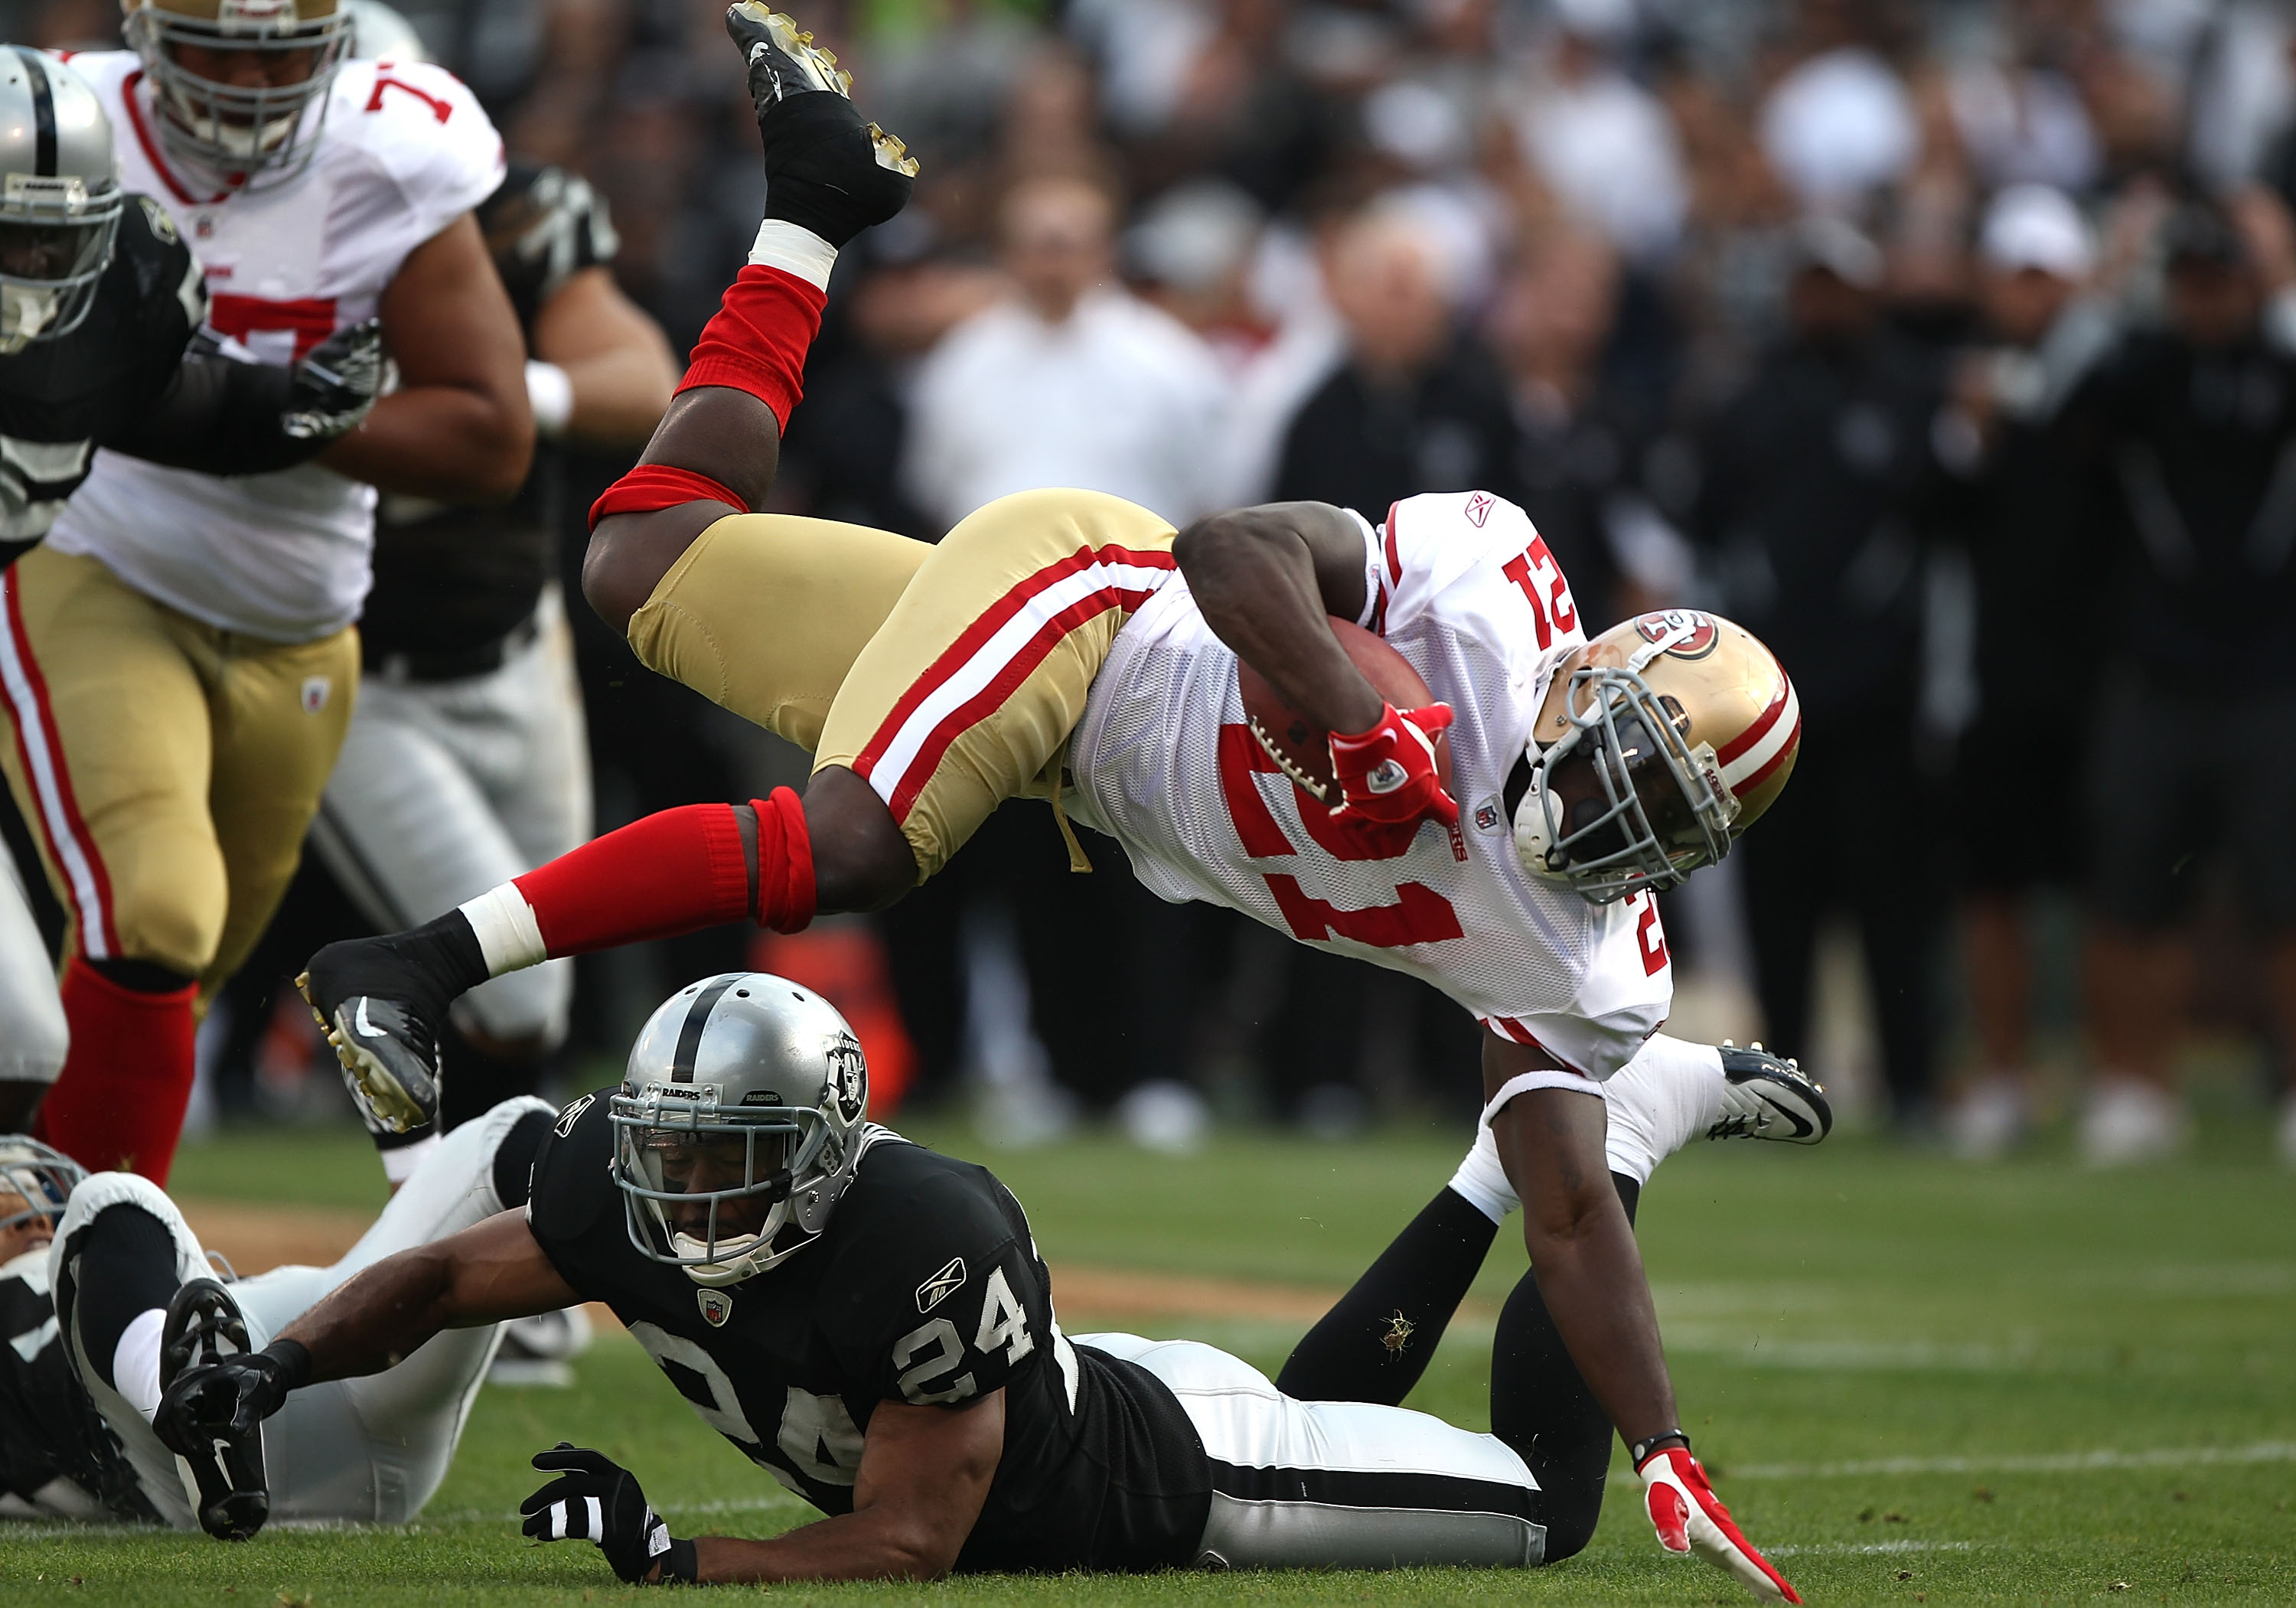 OAKLAND, CA - AUGUST 28:  Frank Gore #21 of the San Francisco 49ers runs against Michael Huff #24 of the Oakland Raiders during an NFL preseason game at Oakland-Alameda County Coliseum on August 28, 2010 in Oakland, California. (Photo by Jed Jacobsohn/Get